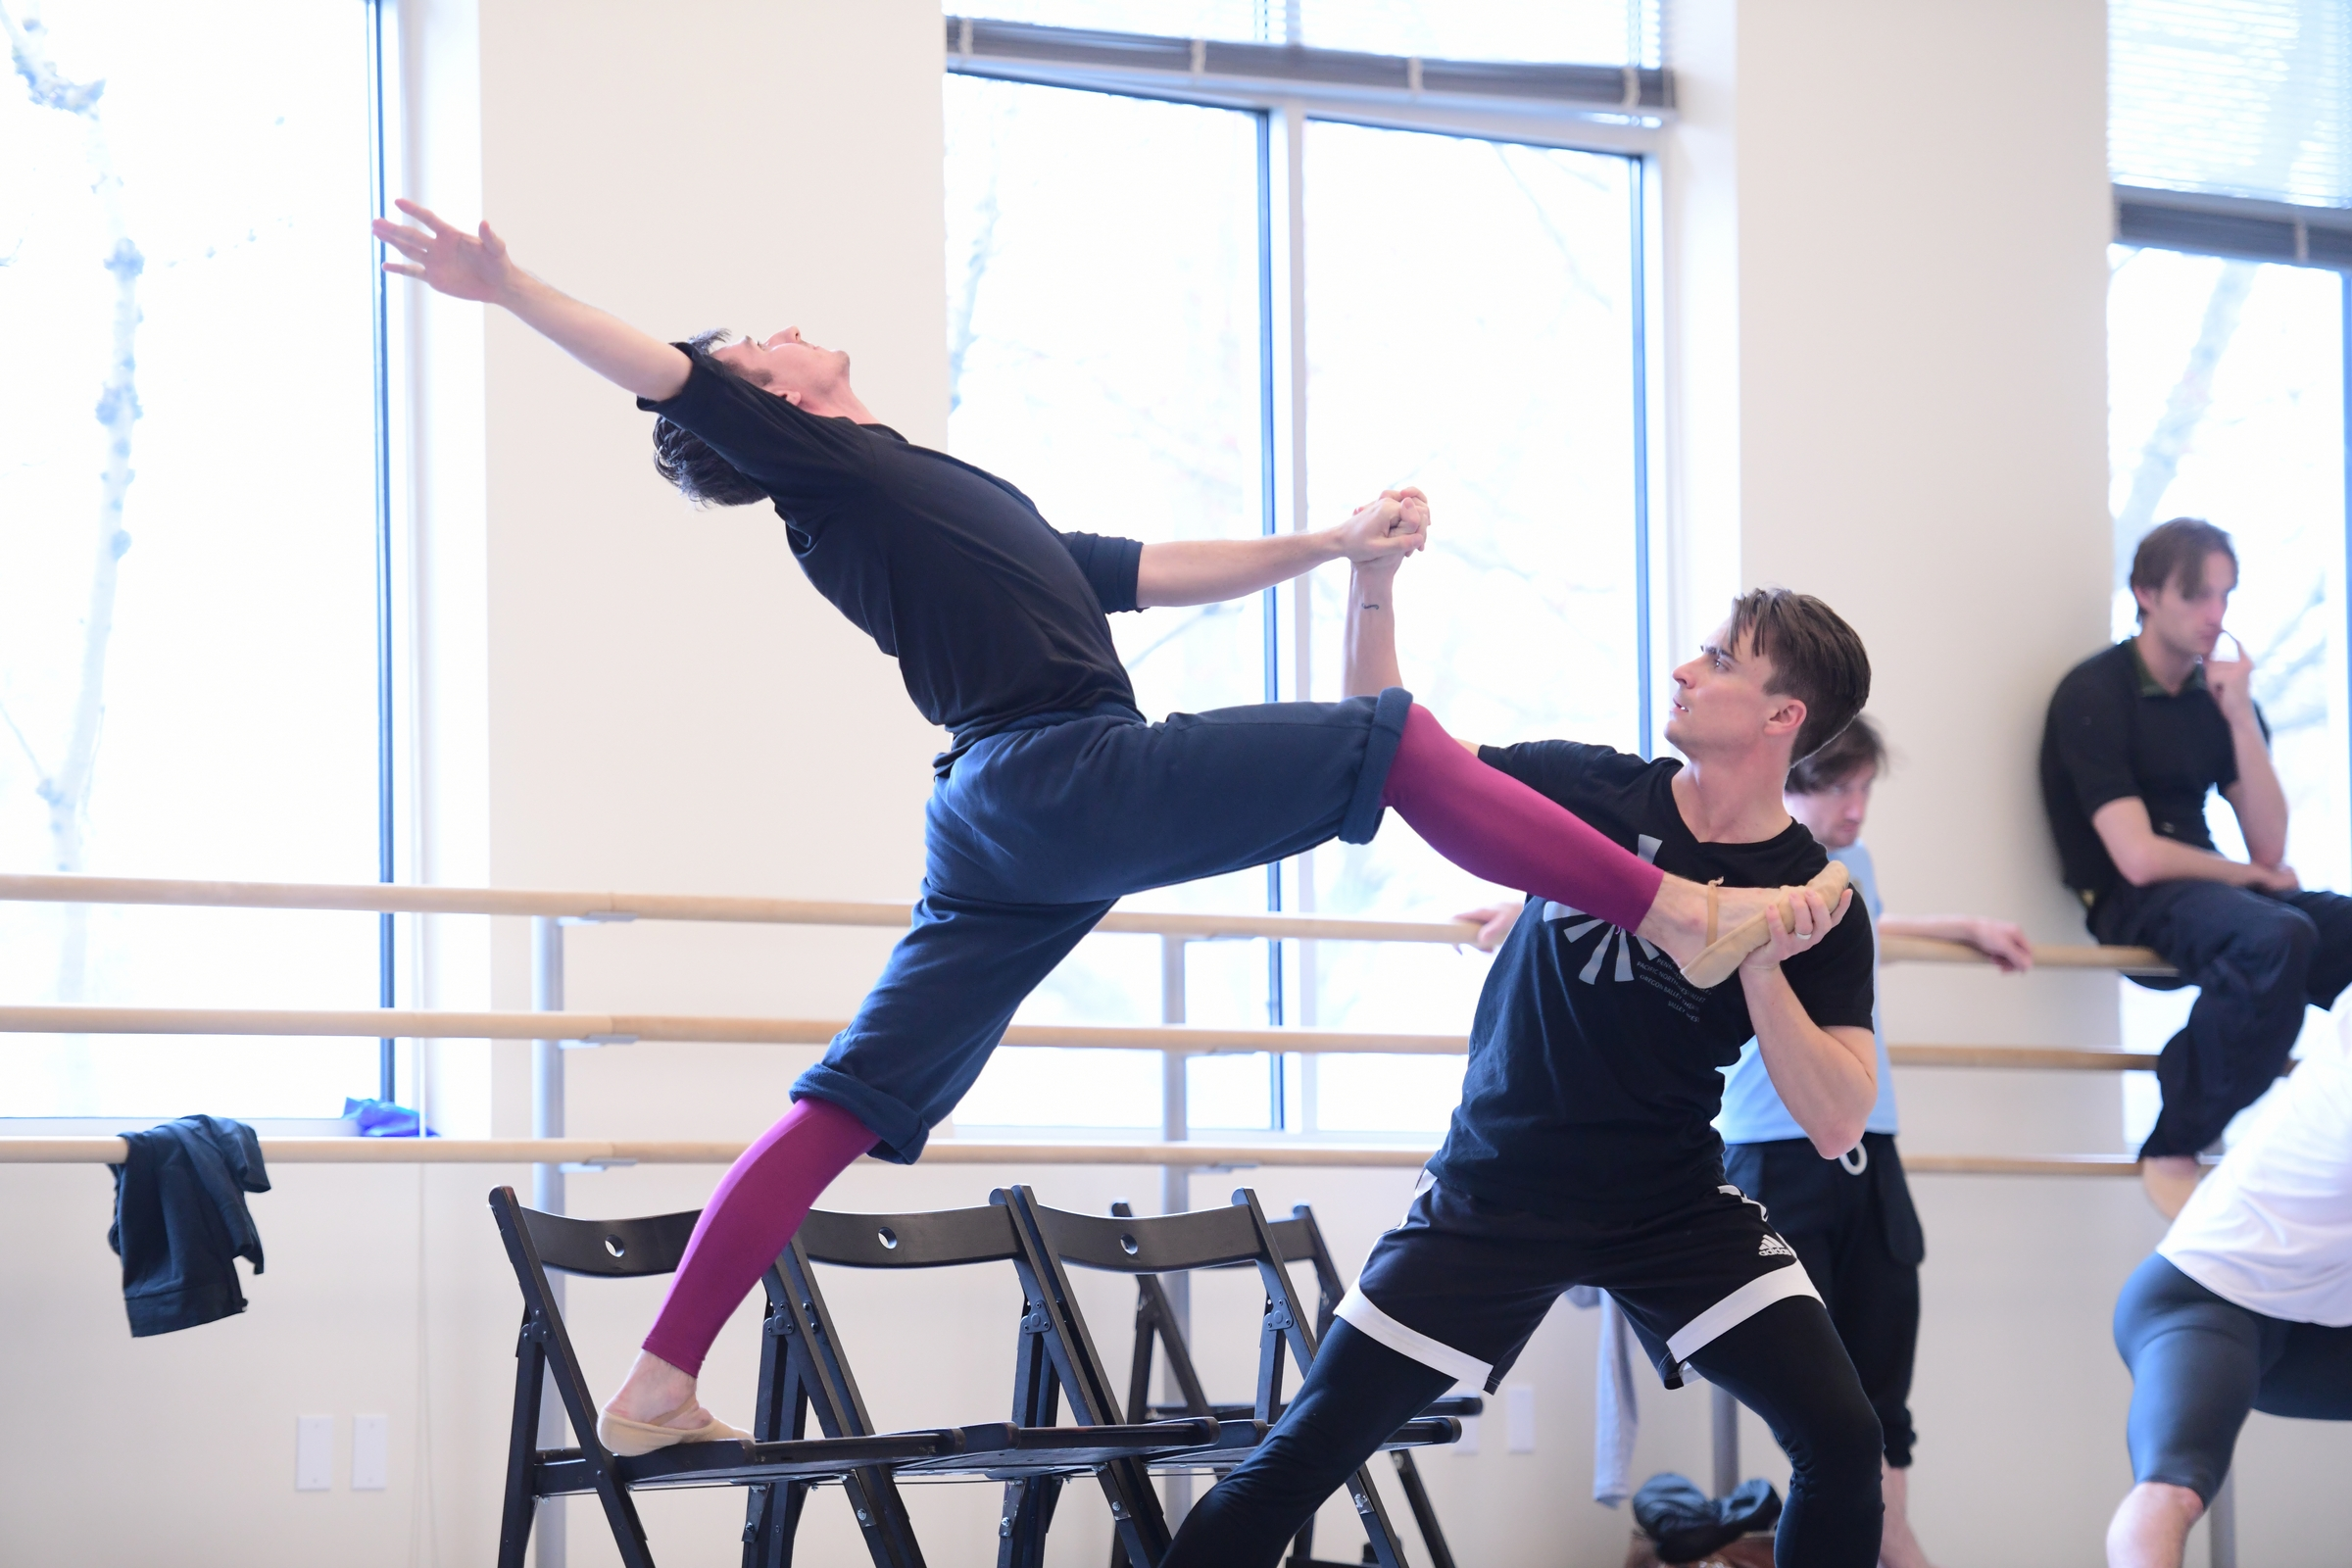 OBT dancers Thomas Baker and Peter Franc rehearsing Nicolo Fonte's Left Unsaid, one of five ballets presented in Oregon Ballet Theatre's MAN/WOMAN, April 12 - 24, 2018 at the Newmark Theatre. Photo by Yi Yin.